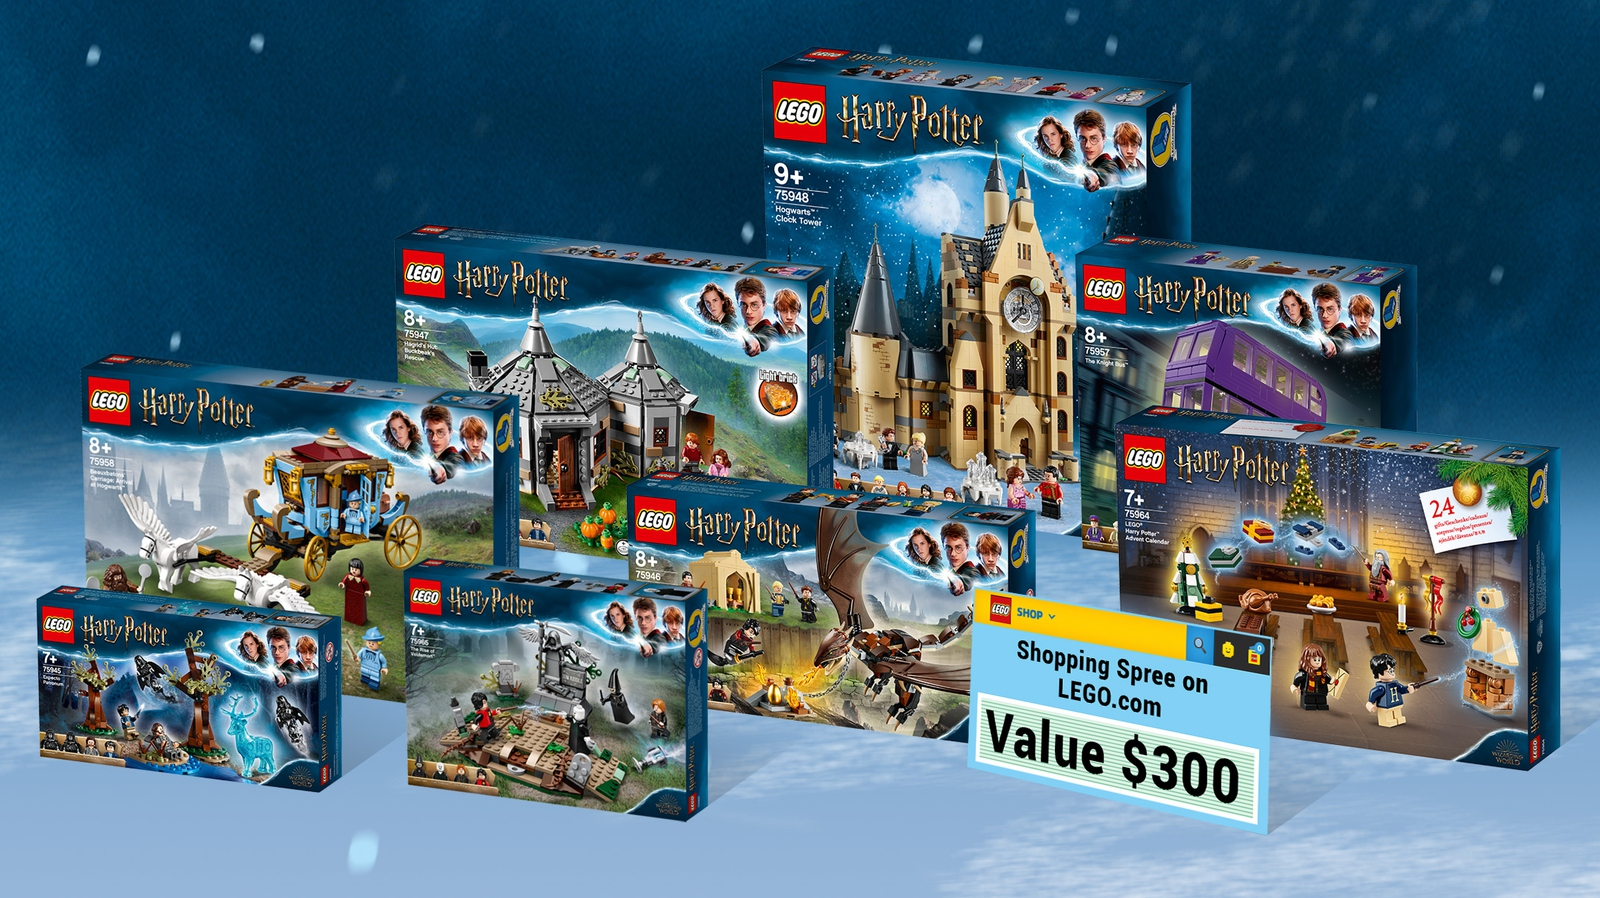 Concurs organizat de LEGO® Ideas: Recreating a Magical Harry Potter™ Holiday Scene!